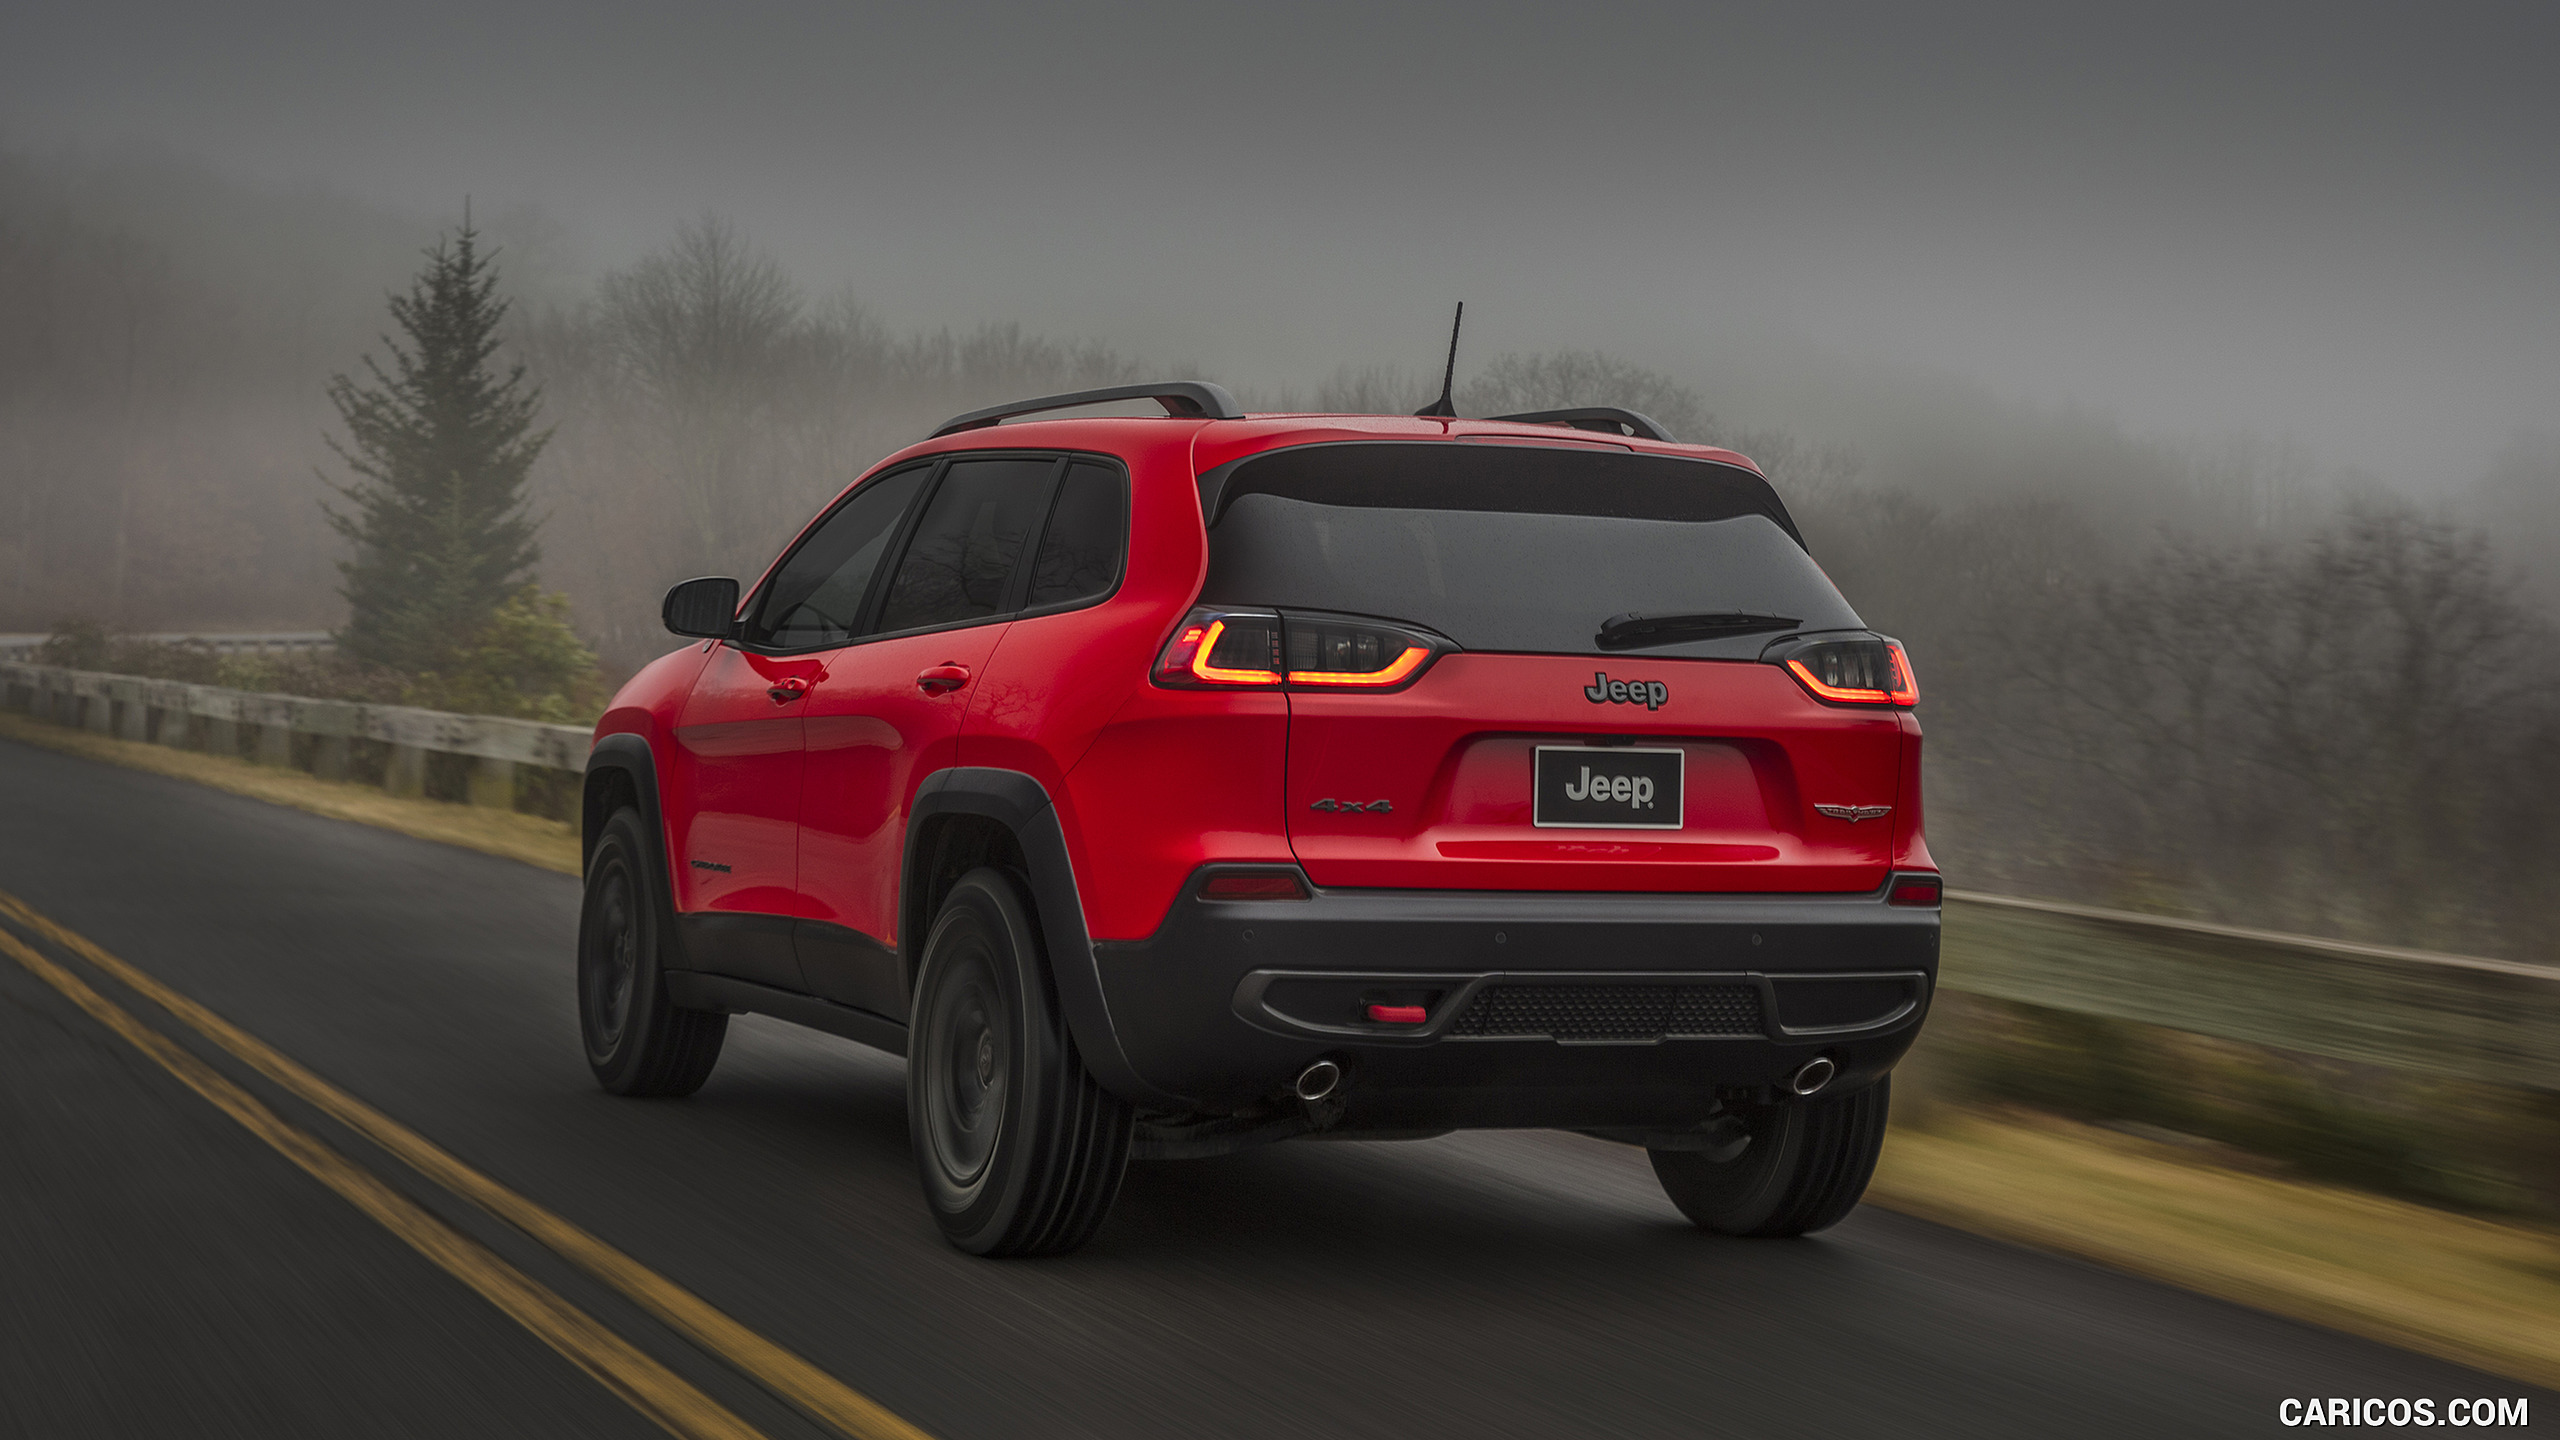 2019 Jeep Cherokee Trailhawk   Rear Three Quarter HD Wallpaper 2 2560x1440